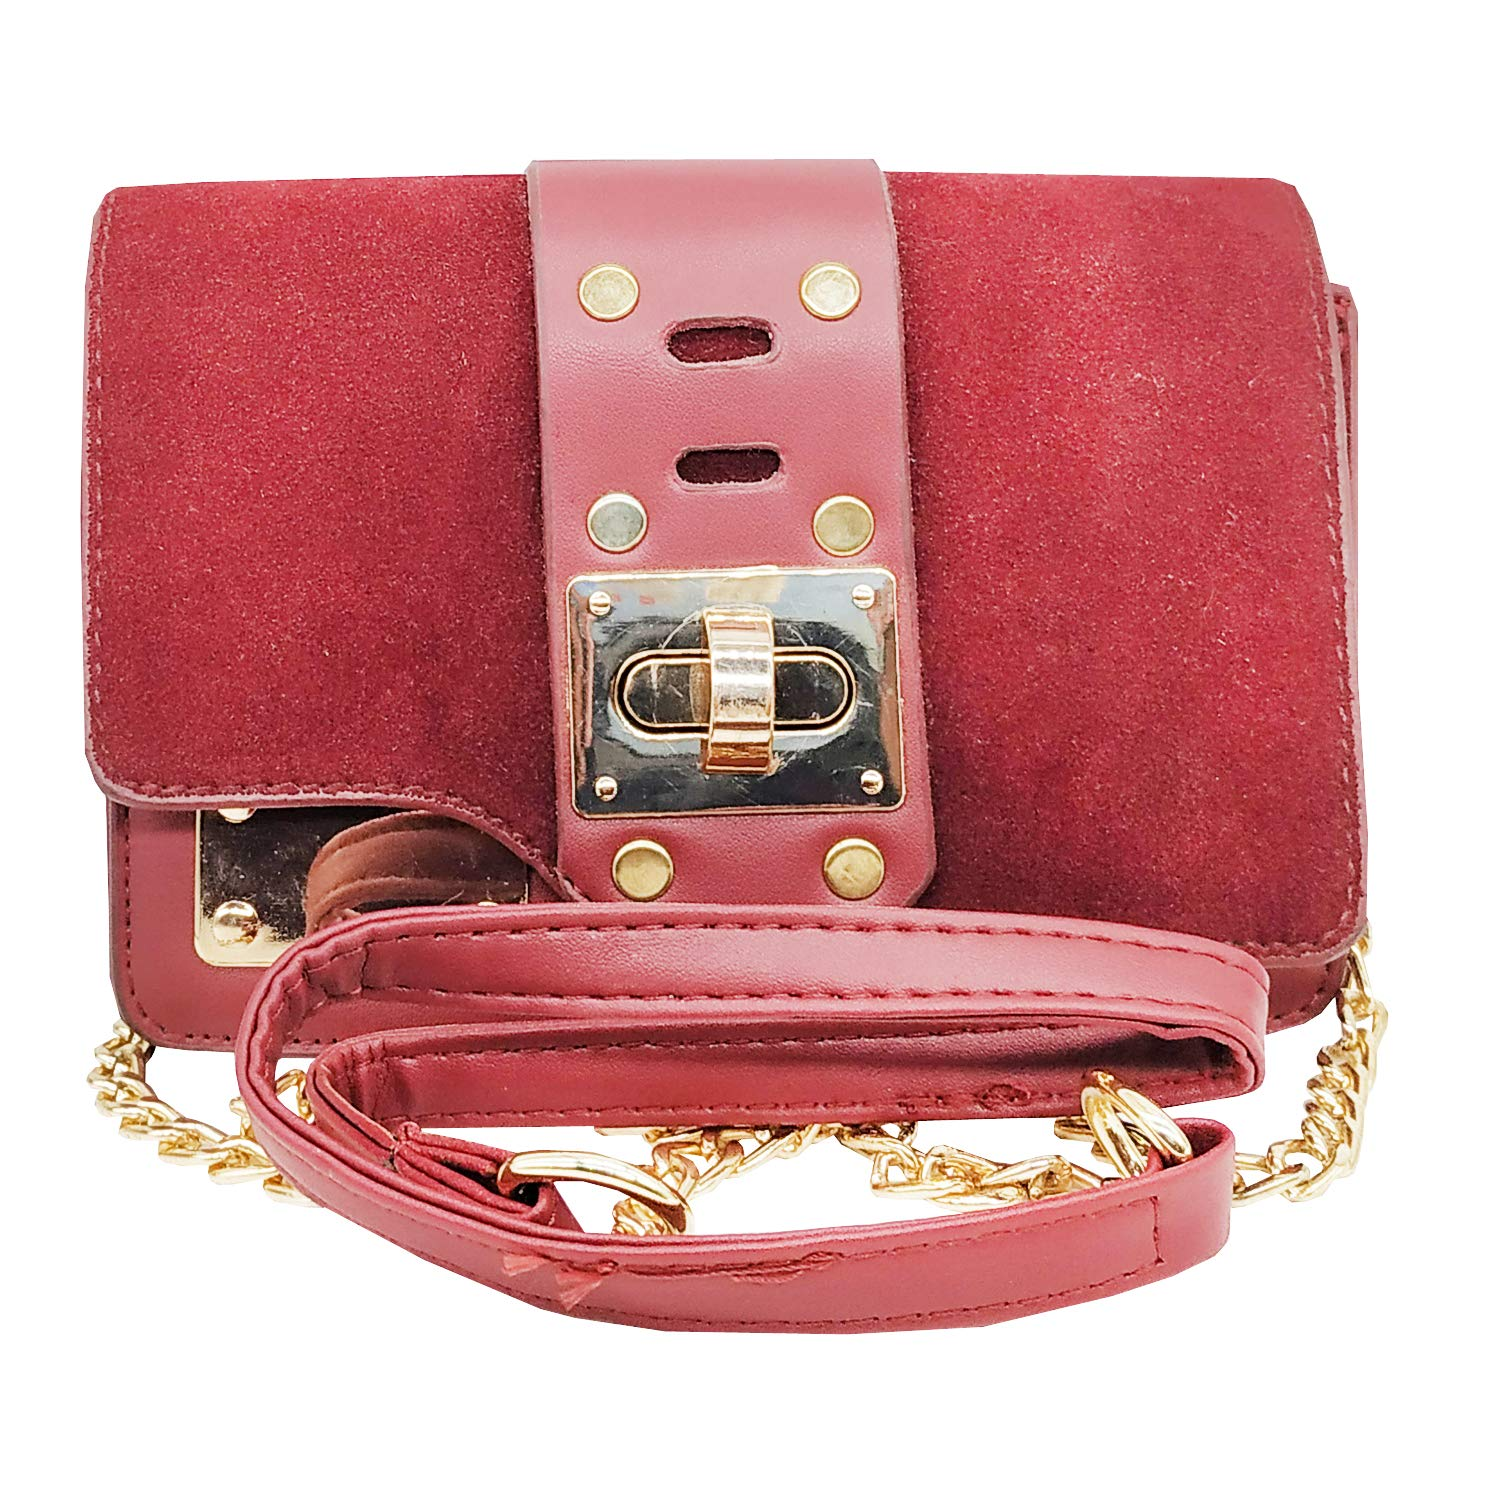 Girls Box Sling Bag Side Bag Cross Body Bag (Maroon) - Bagaholics Gift